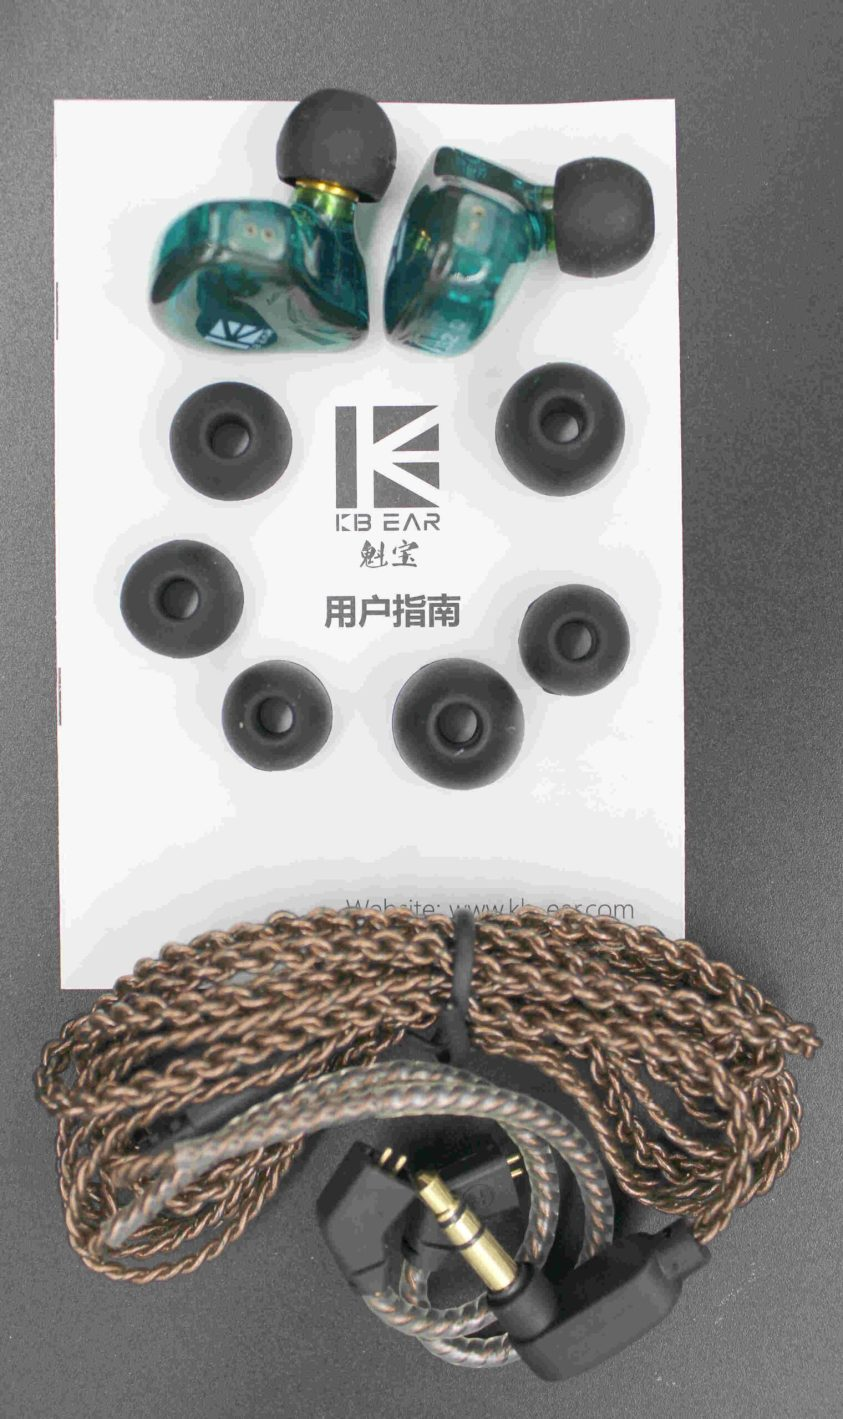 KB EAR KS2 - Reviews   Headphone Reviews and Discussion ...